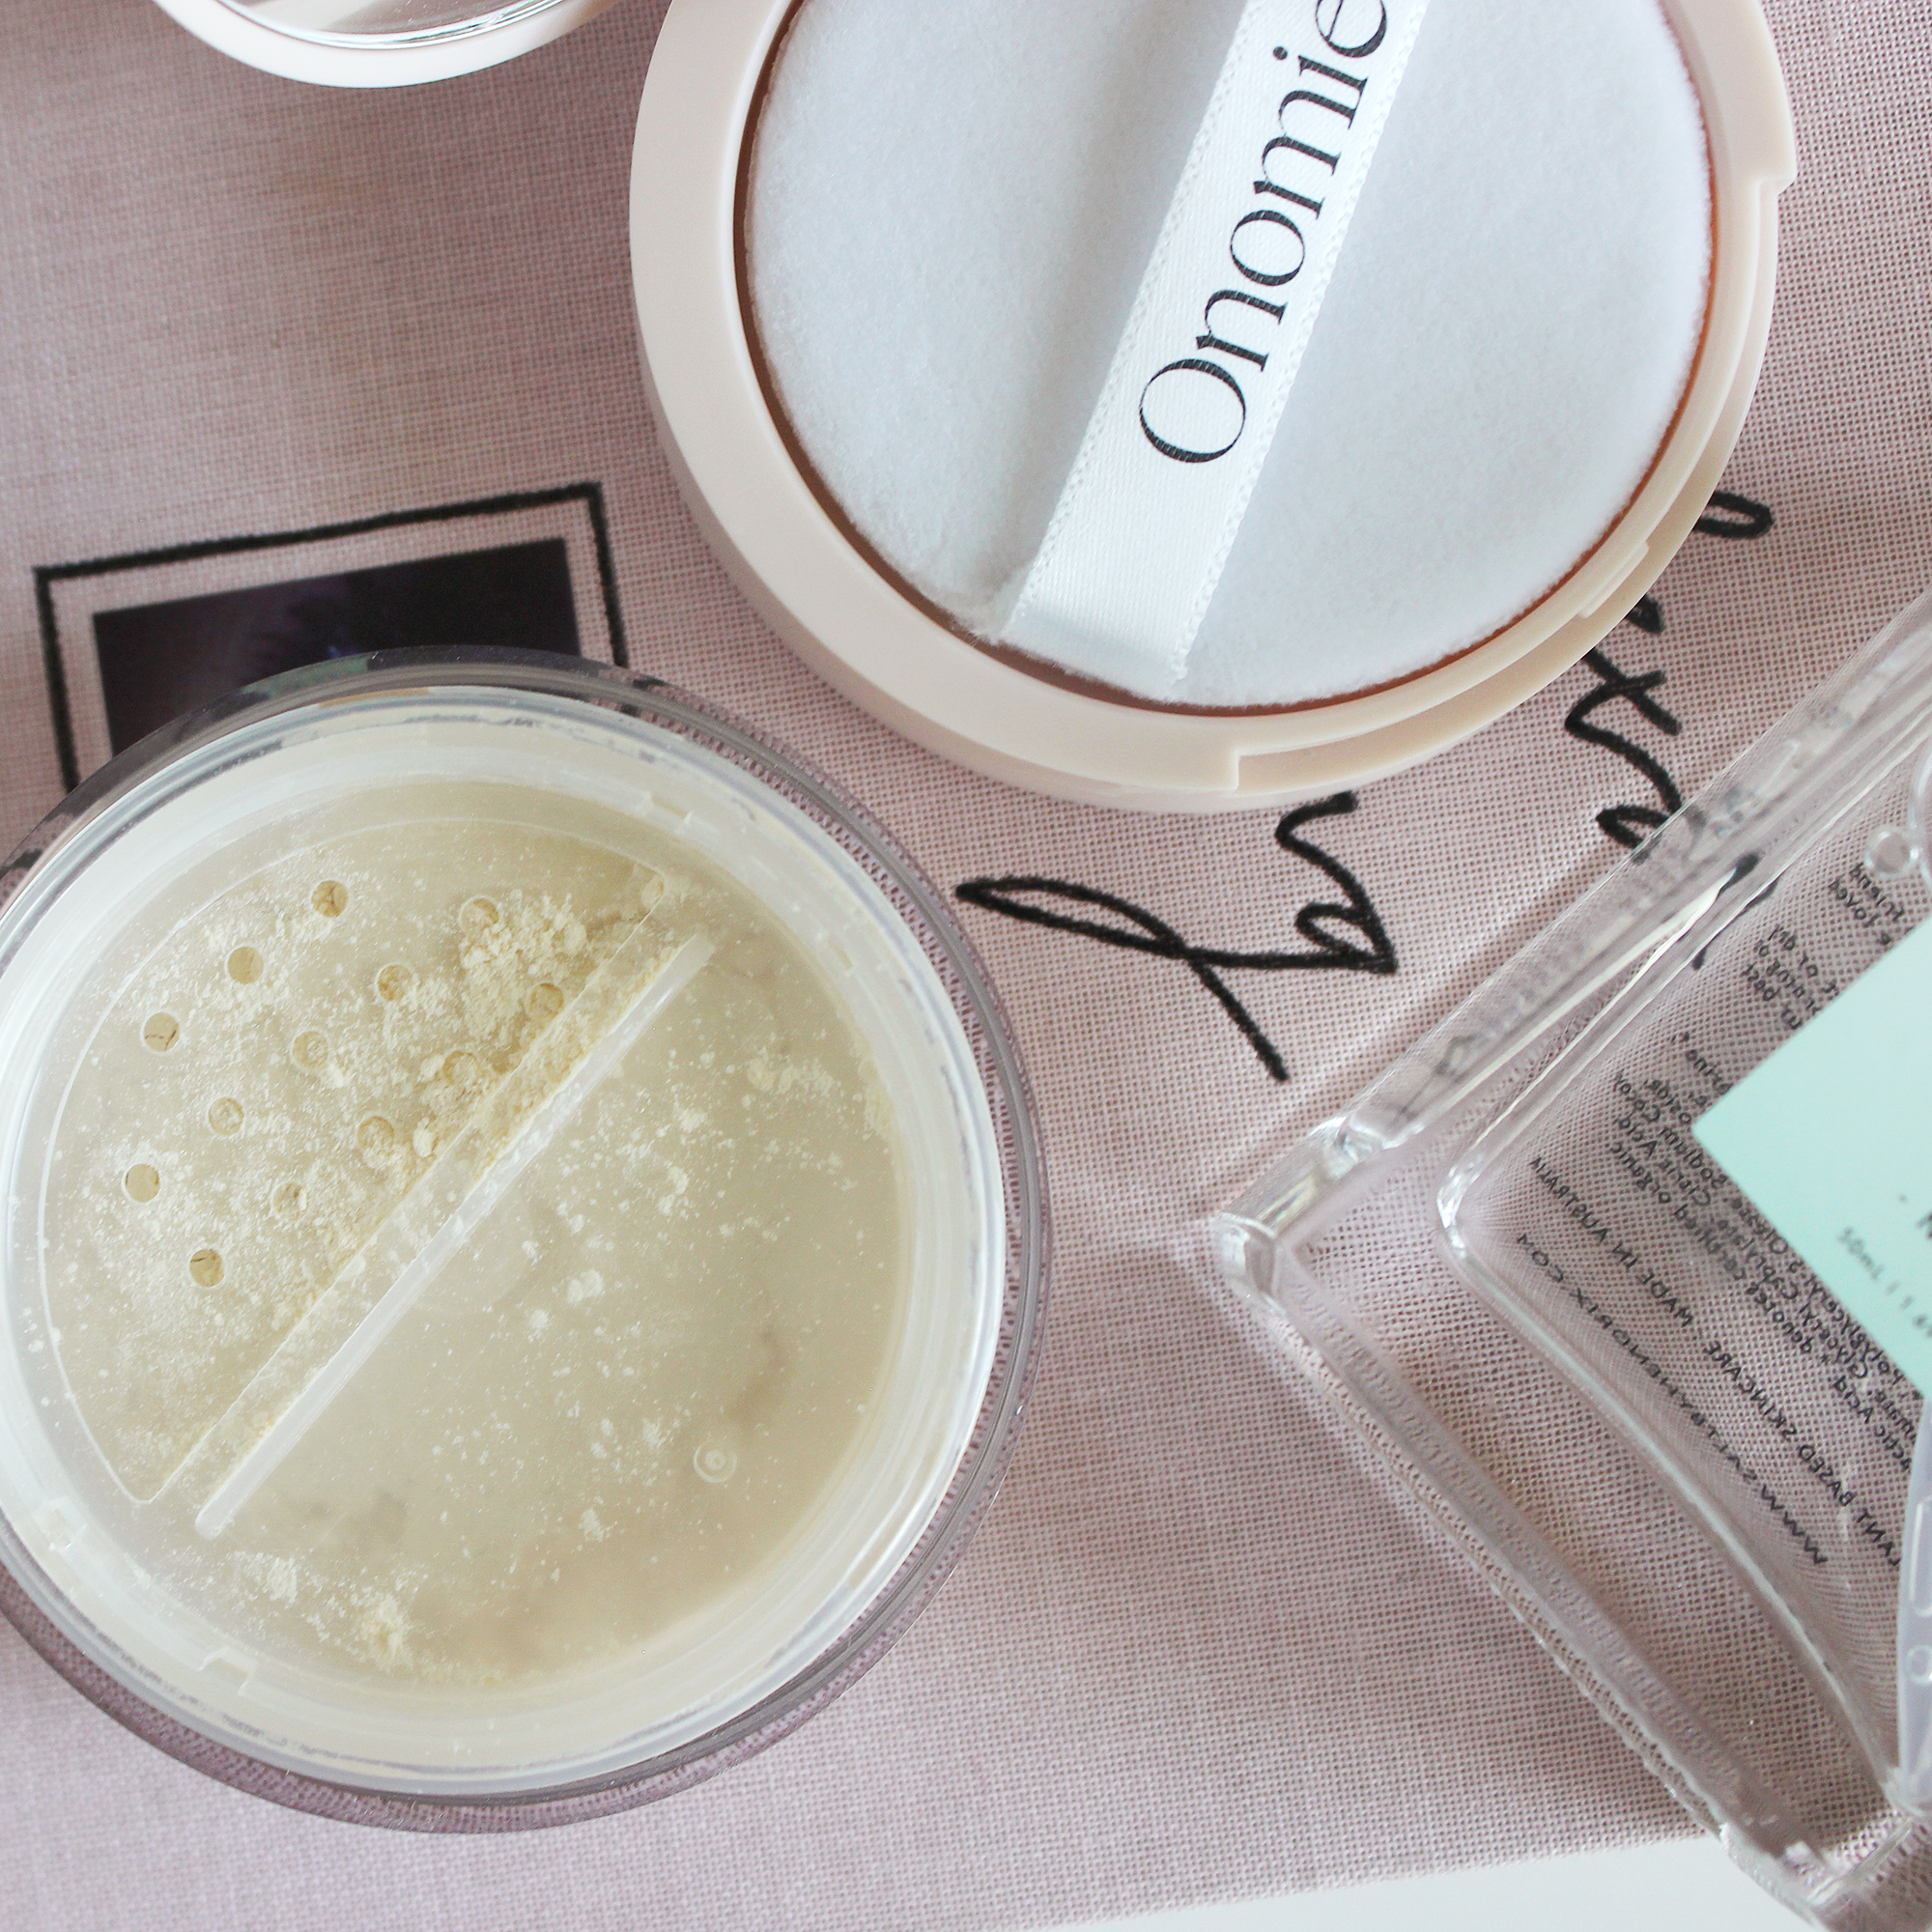 Onomie AHA! Perfecting Setting Powder